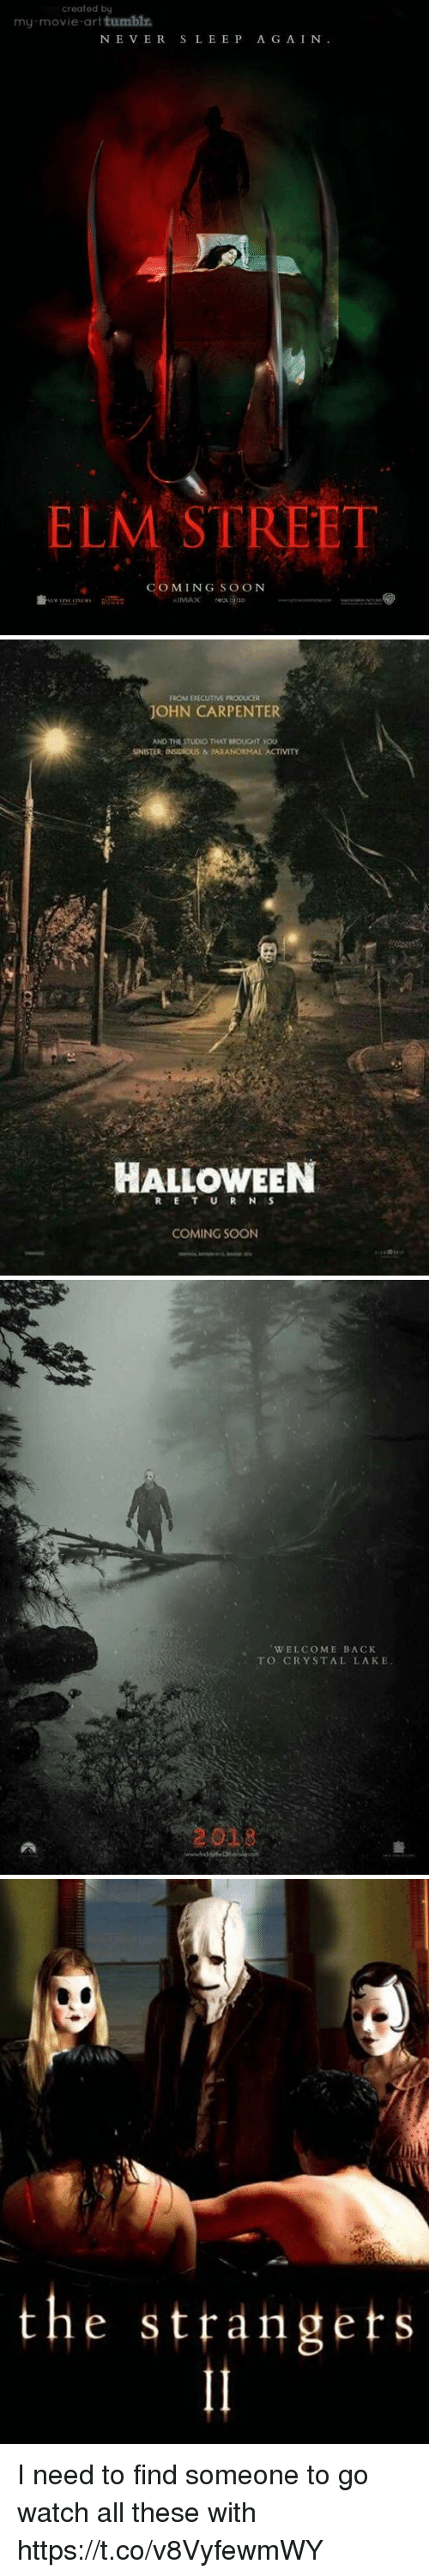 insidious: created by  my-movie-art tumblr  NE VERSLEEP A G AIN.  ELM STREET  COMING SO oN   ROM EXECUTIVE PRODUCER  JOHN CARPENTER  AND THE STUDIO THAT BROUGHT YOU  SINISTER INSIDIOUS & TARANORMAL ACTIVITY  HALLOWEEN  COMING SOON   WELCOME BACK  TO CRYSTAL LAKE  2029   the strangets  1 I need to find someone to go watch all these with https://t.co/v8VyfewmWY